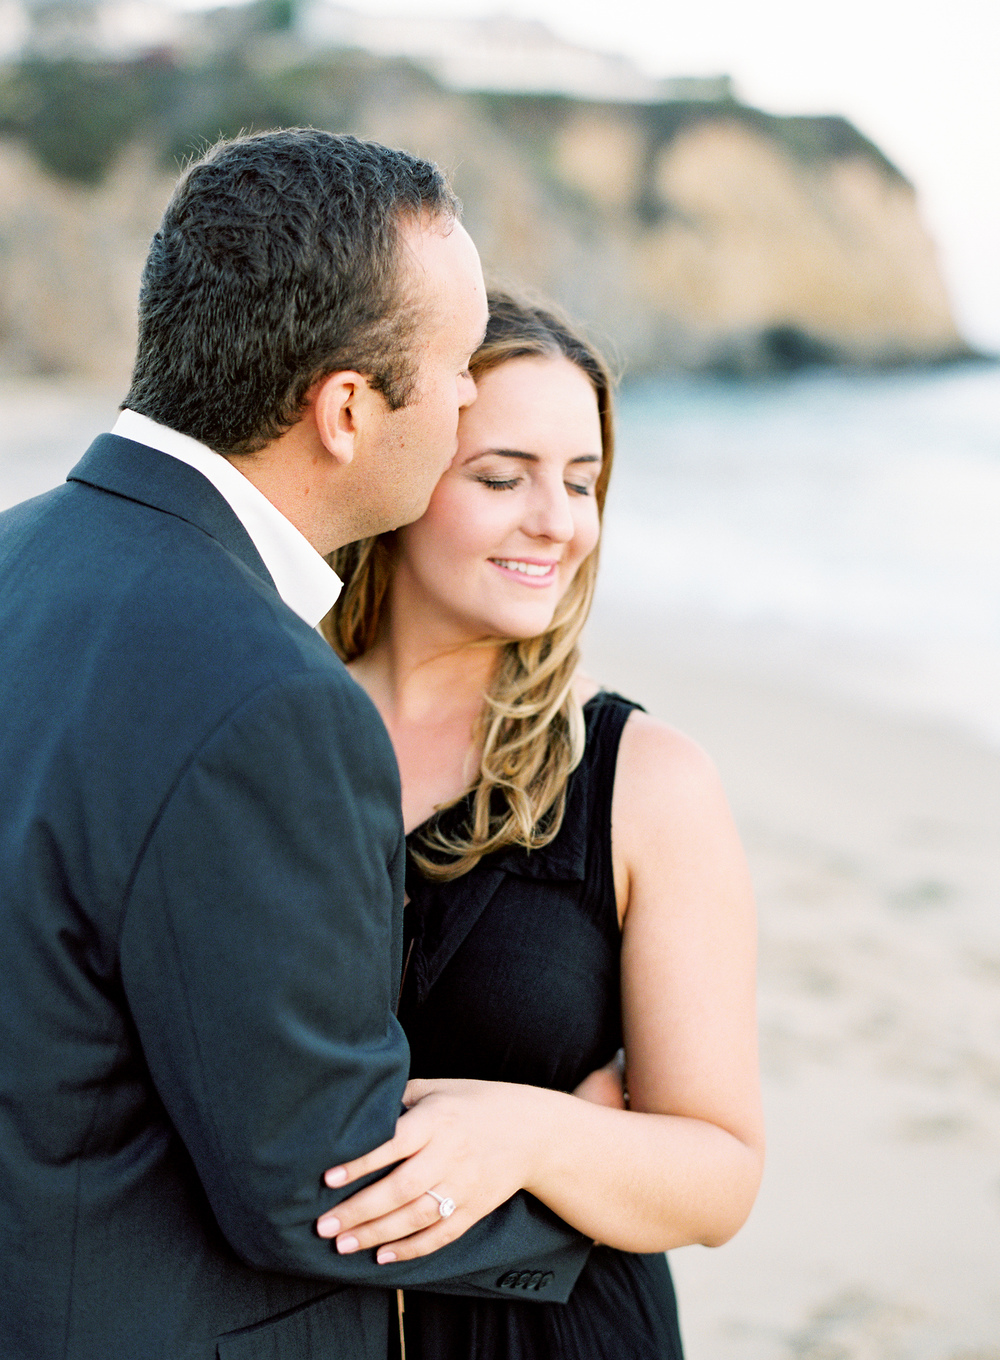 Laguna-Beach-Engagement-Film-Wedding-Orange-County-107.jpg